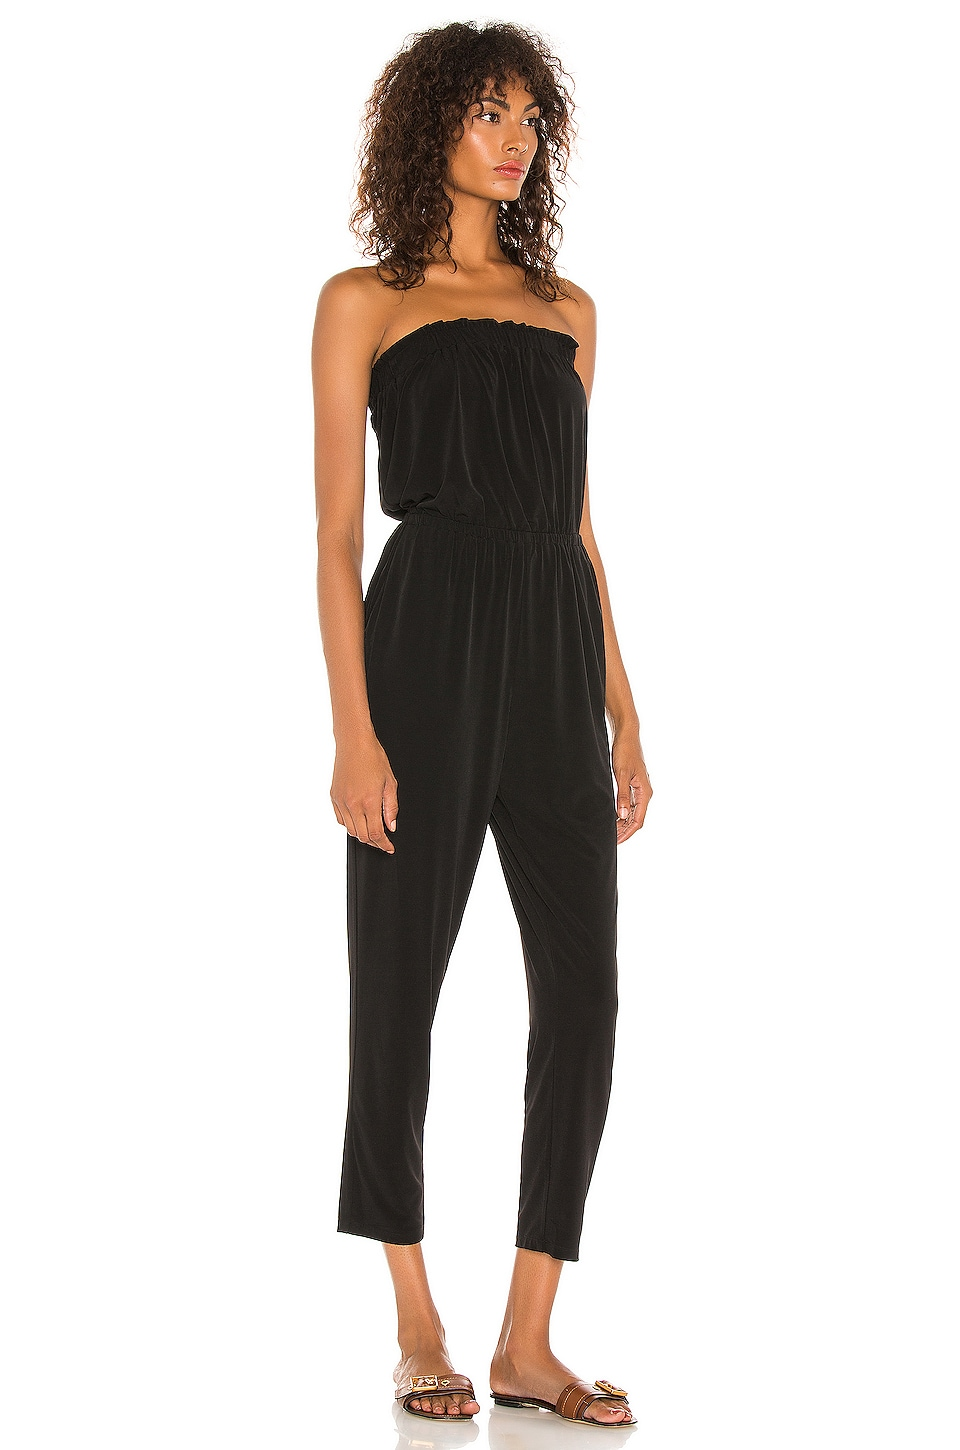 Strapless Knit Jumpsuit, view 2, click to view large image.